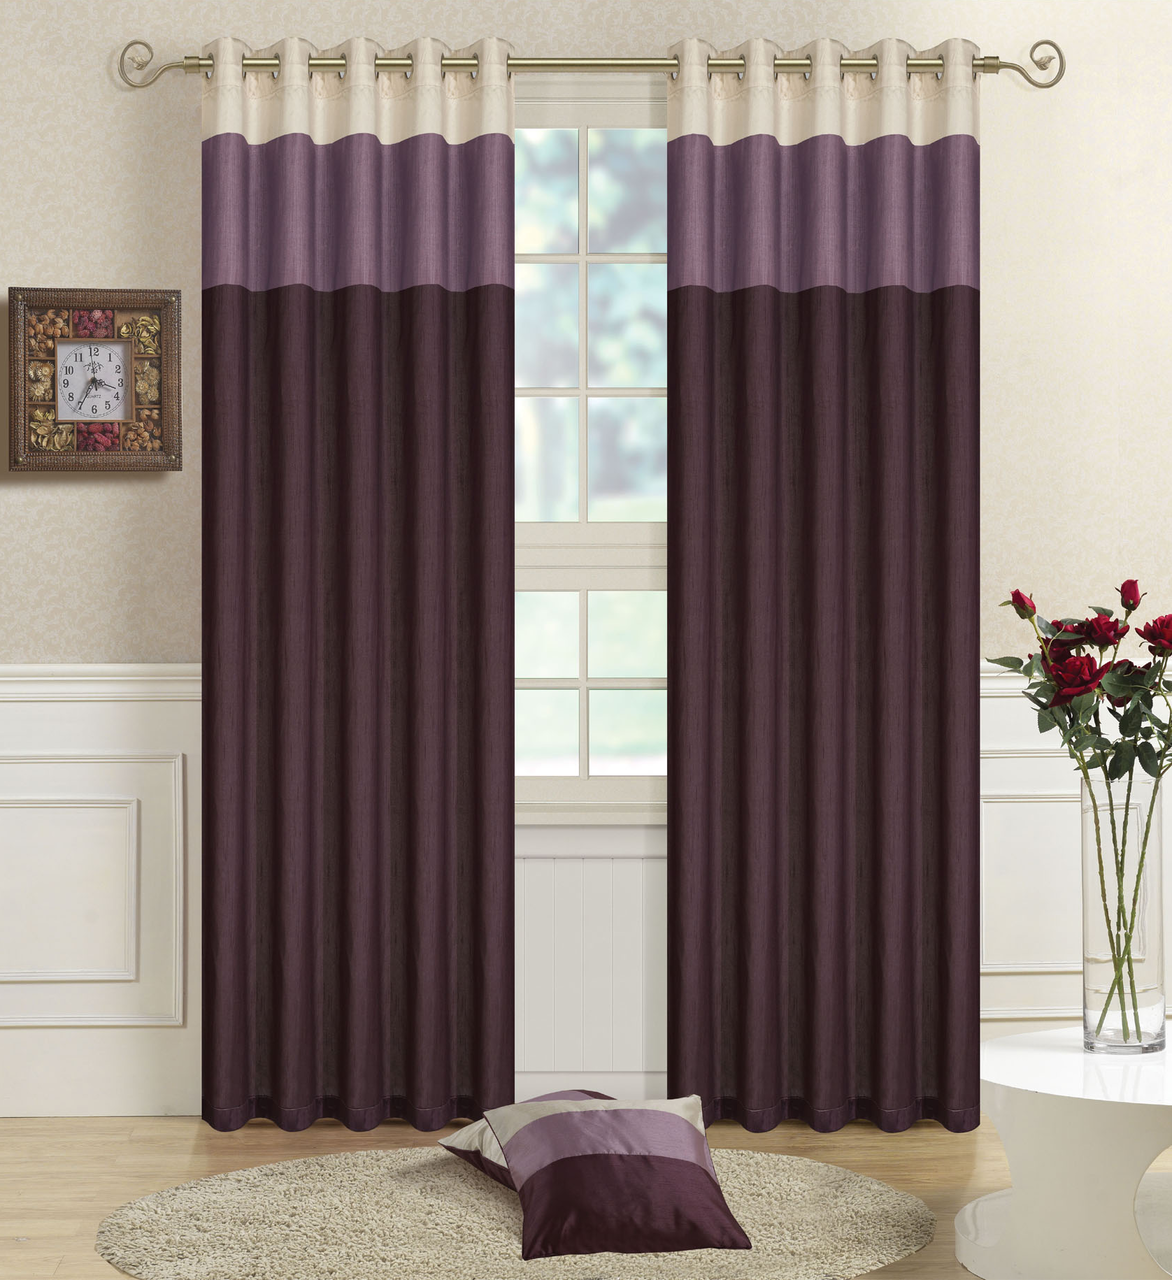 Curtains for bedroom windows with designs - Bedroom Curtains